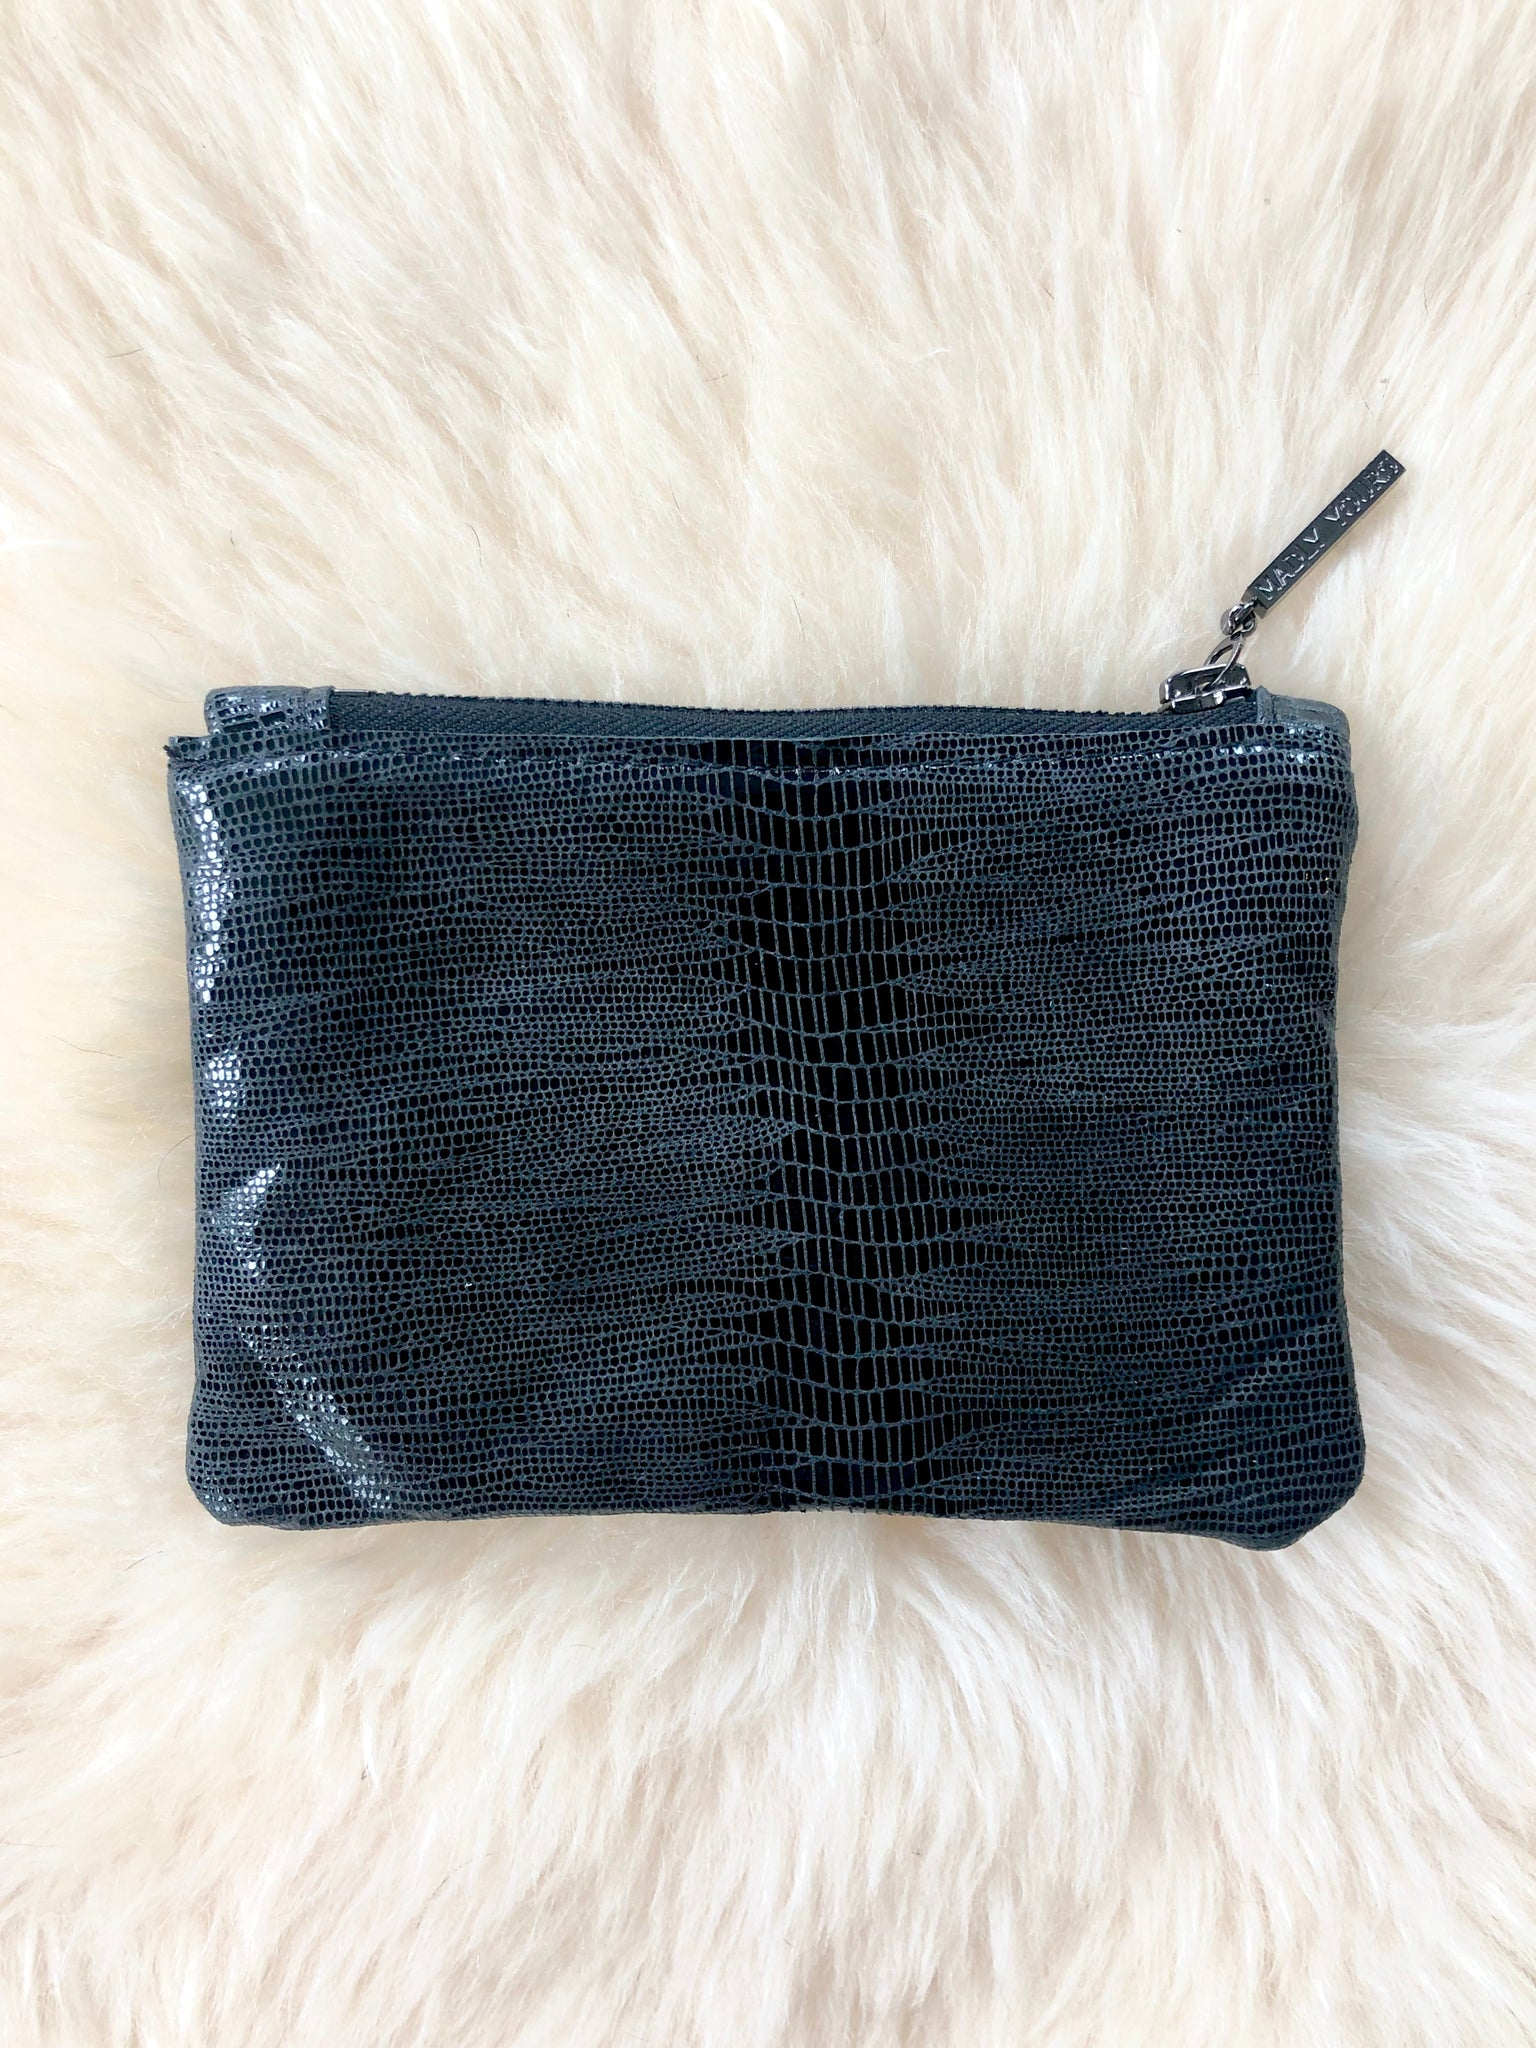 The MALI MINI Pouch